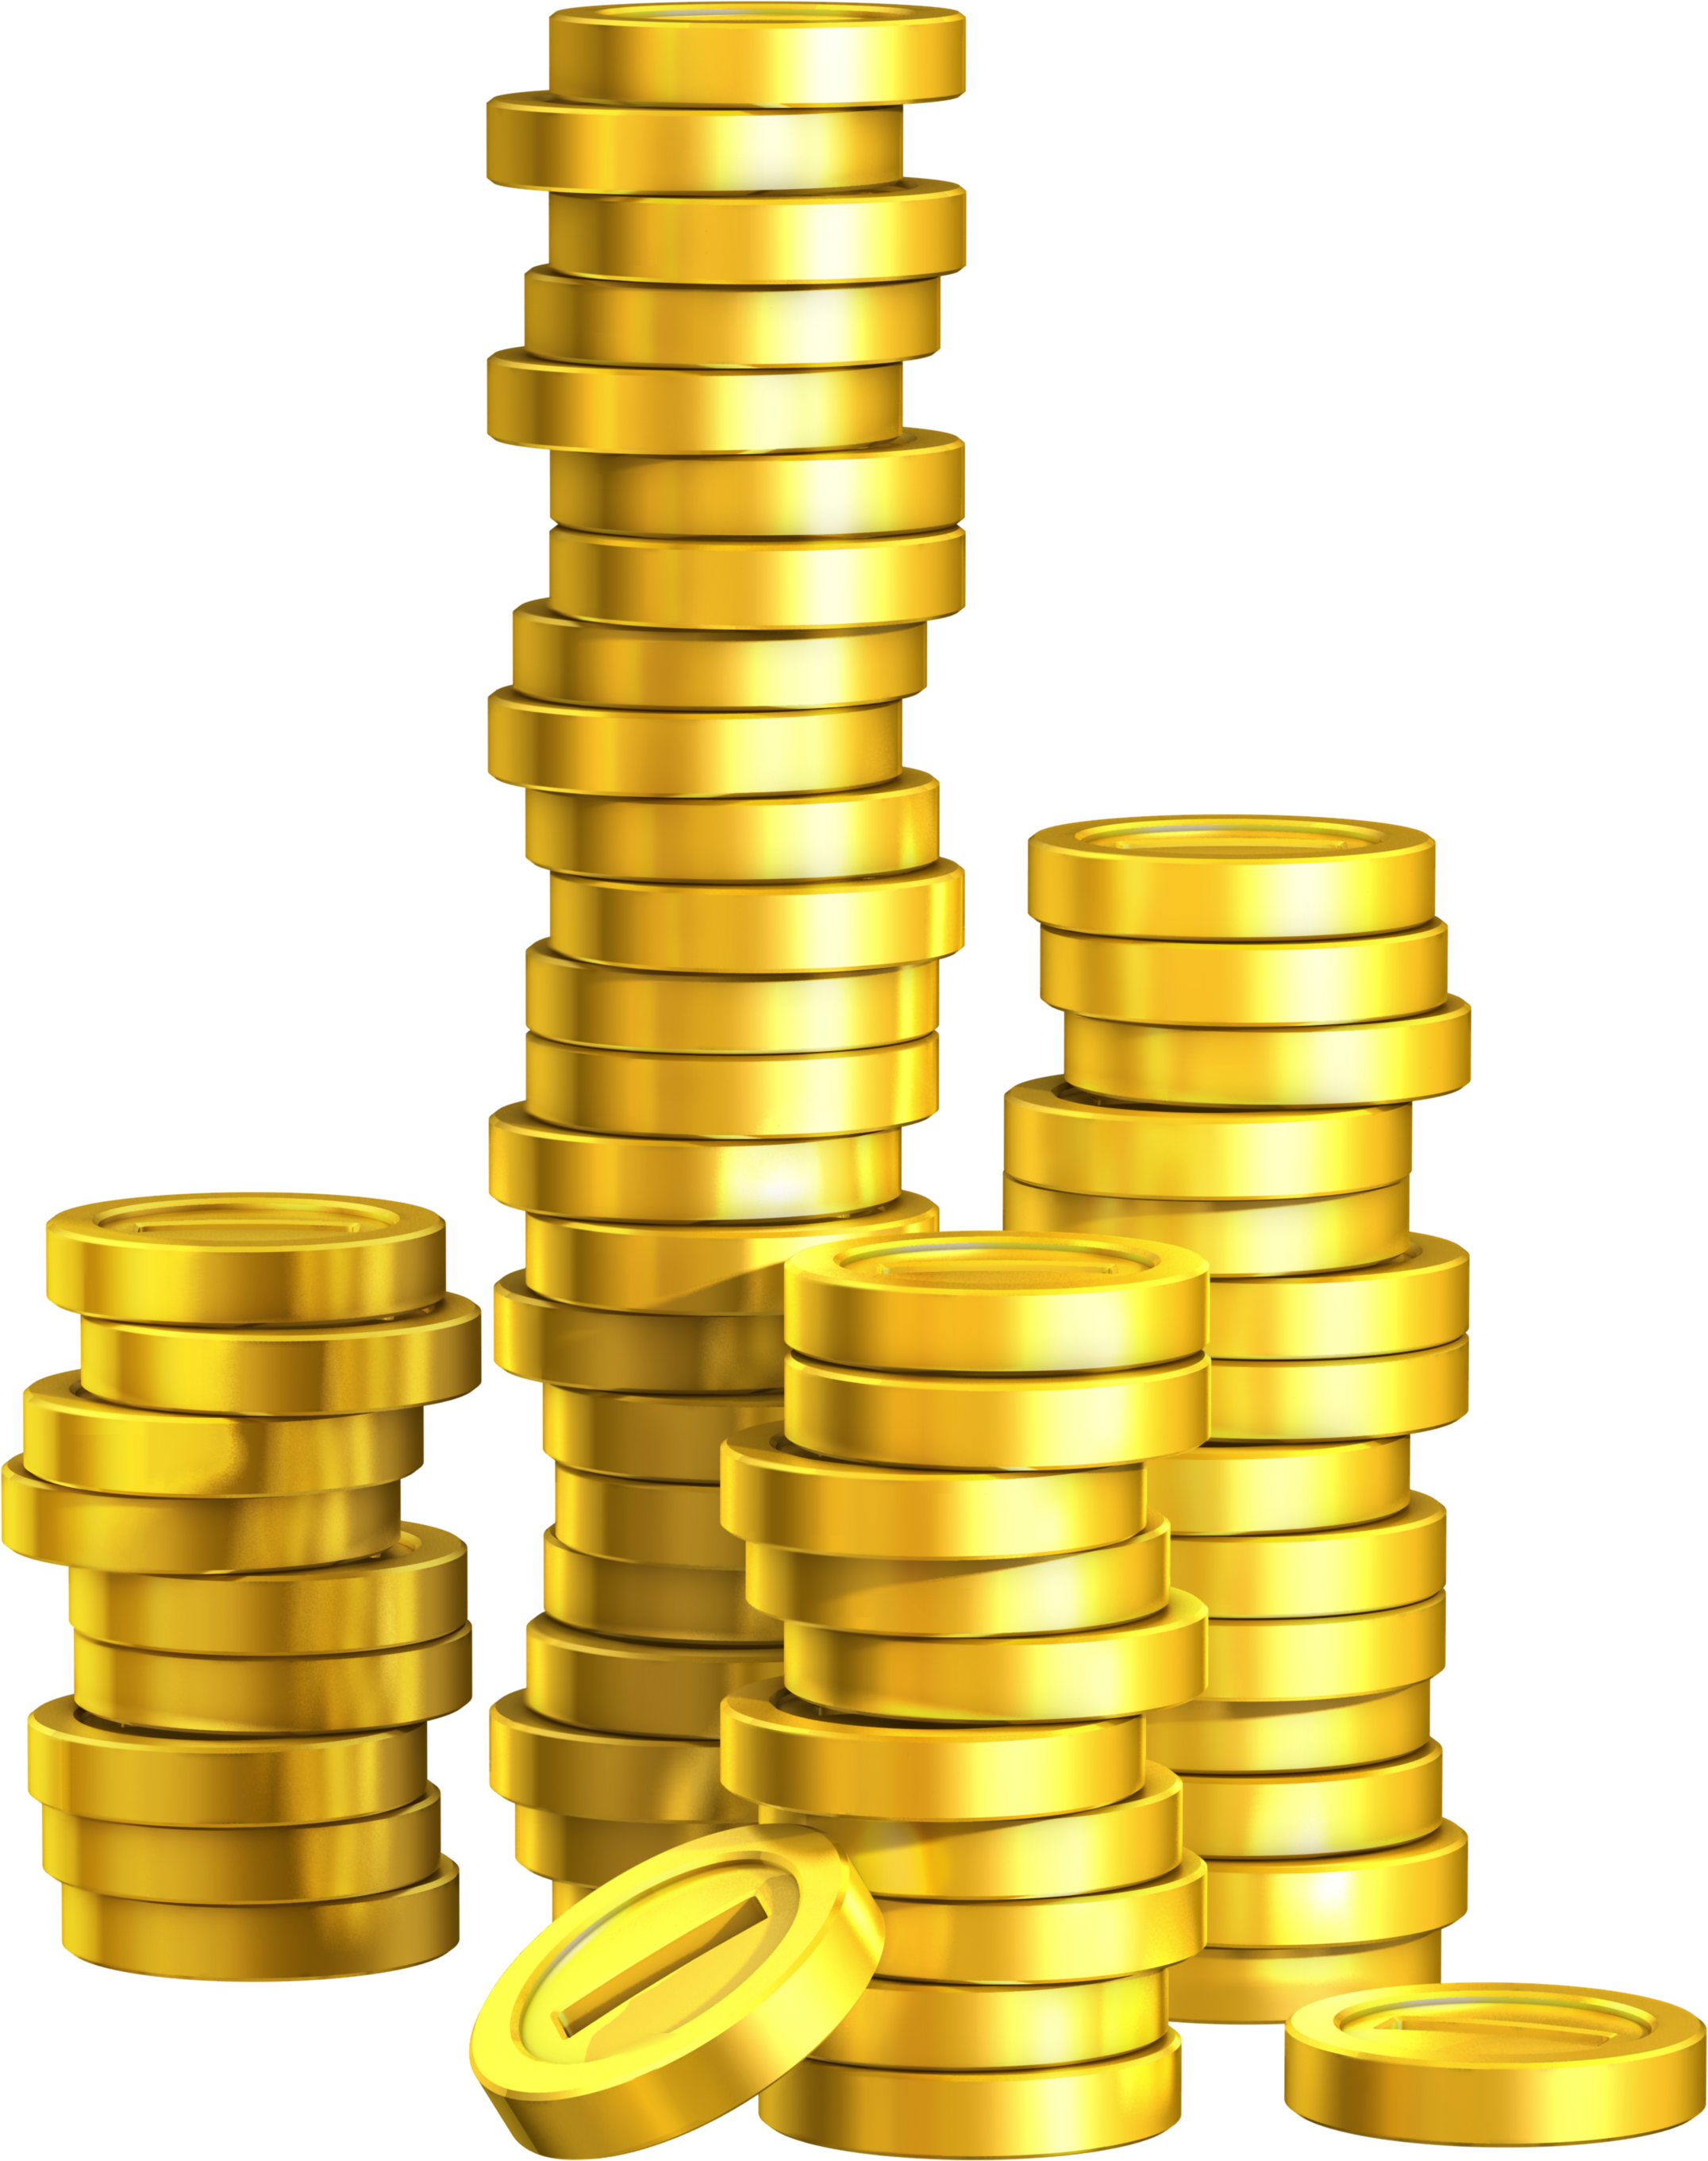 Trends For > Stack Of Gold Coins Png - Cliparts.co